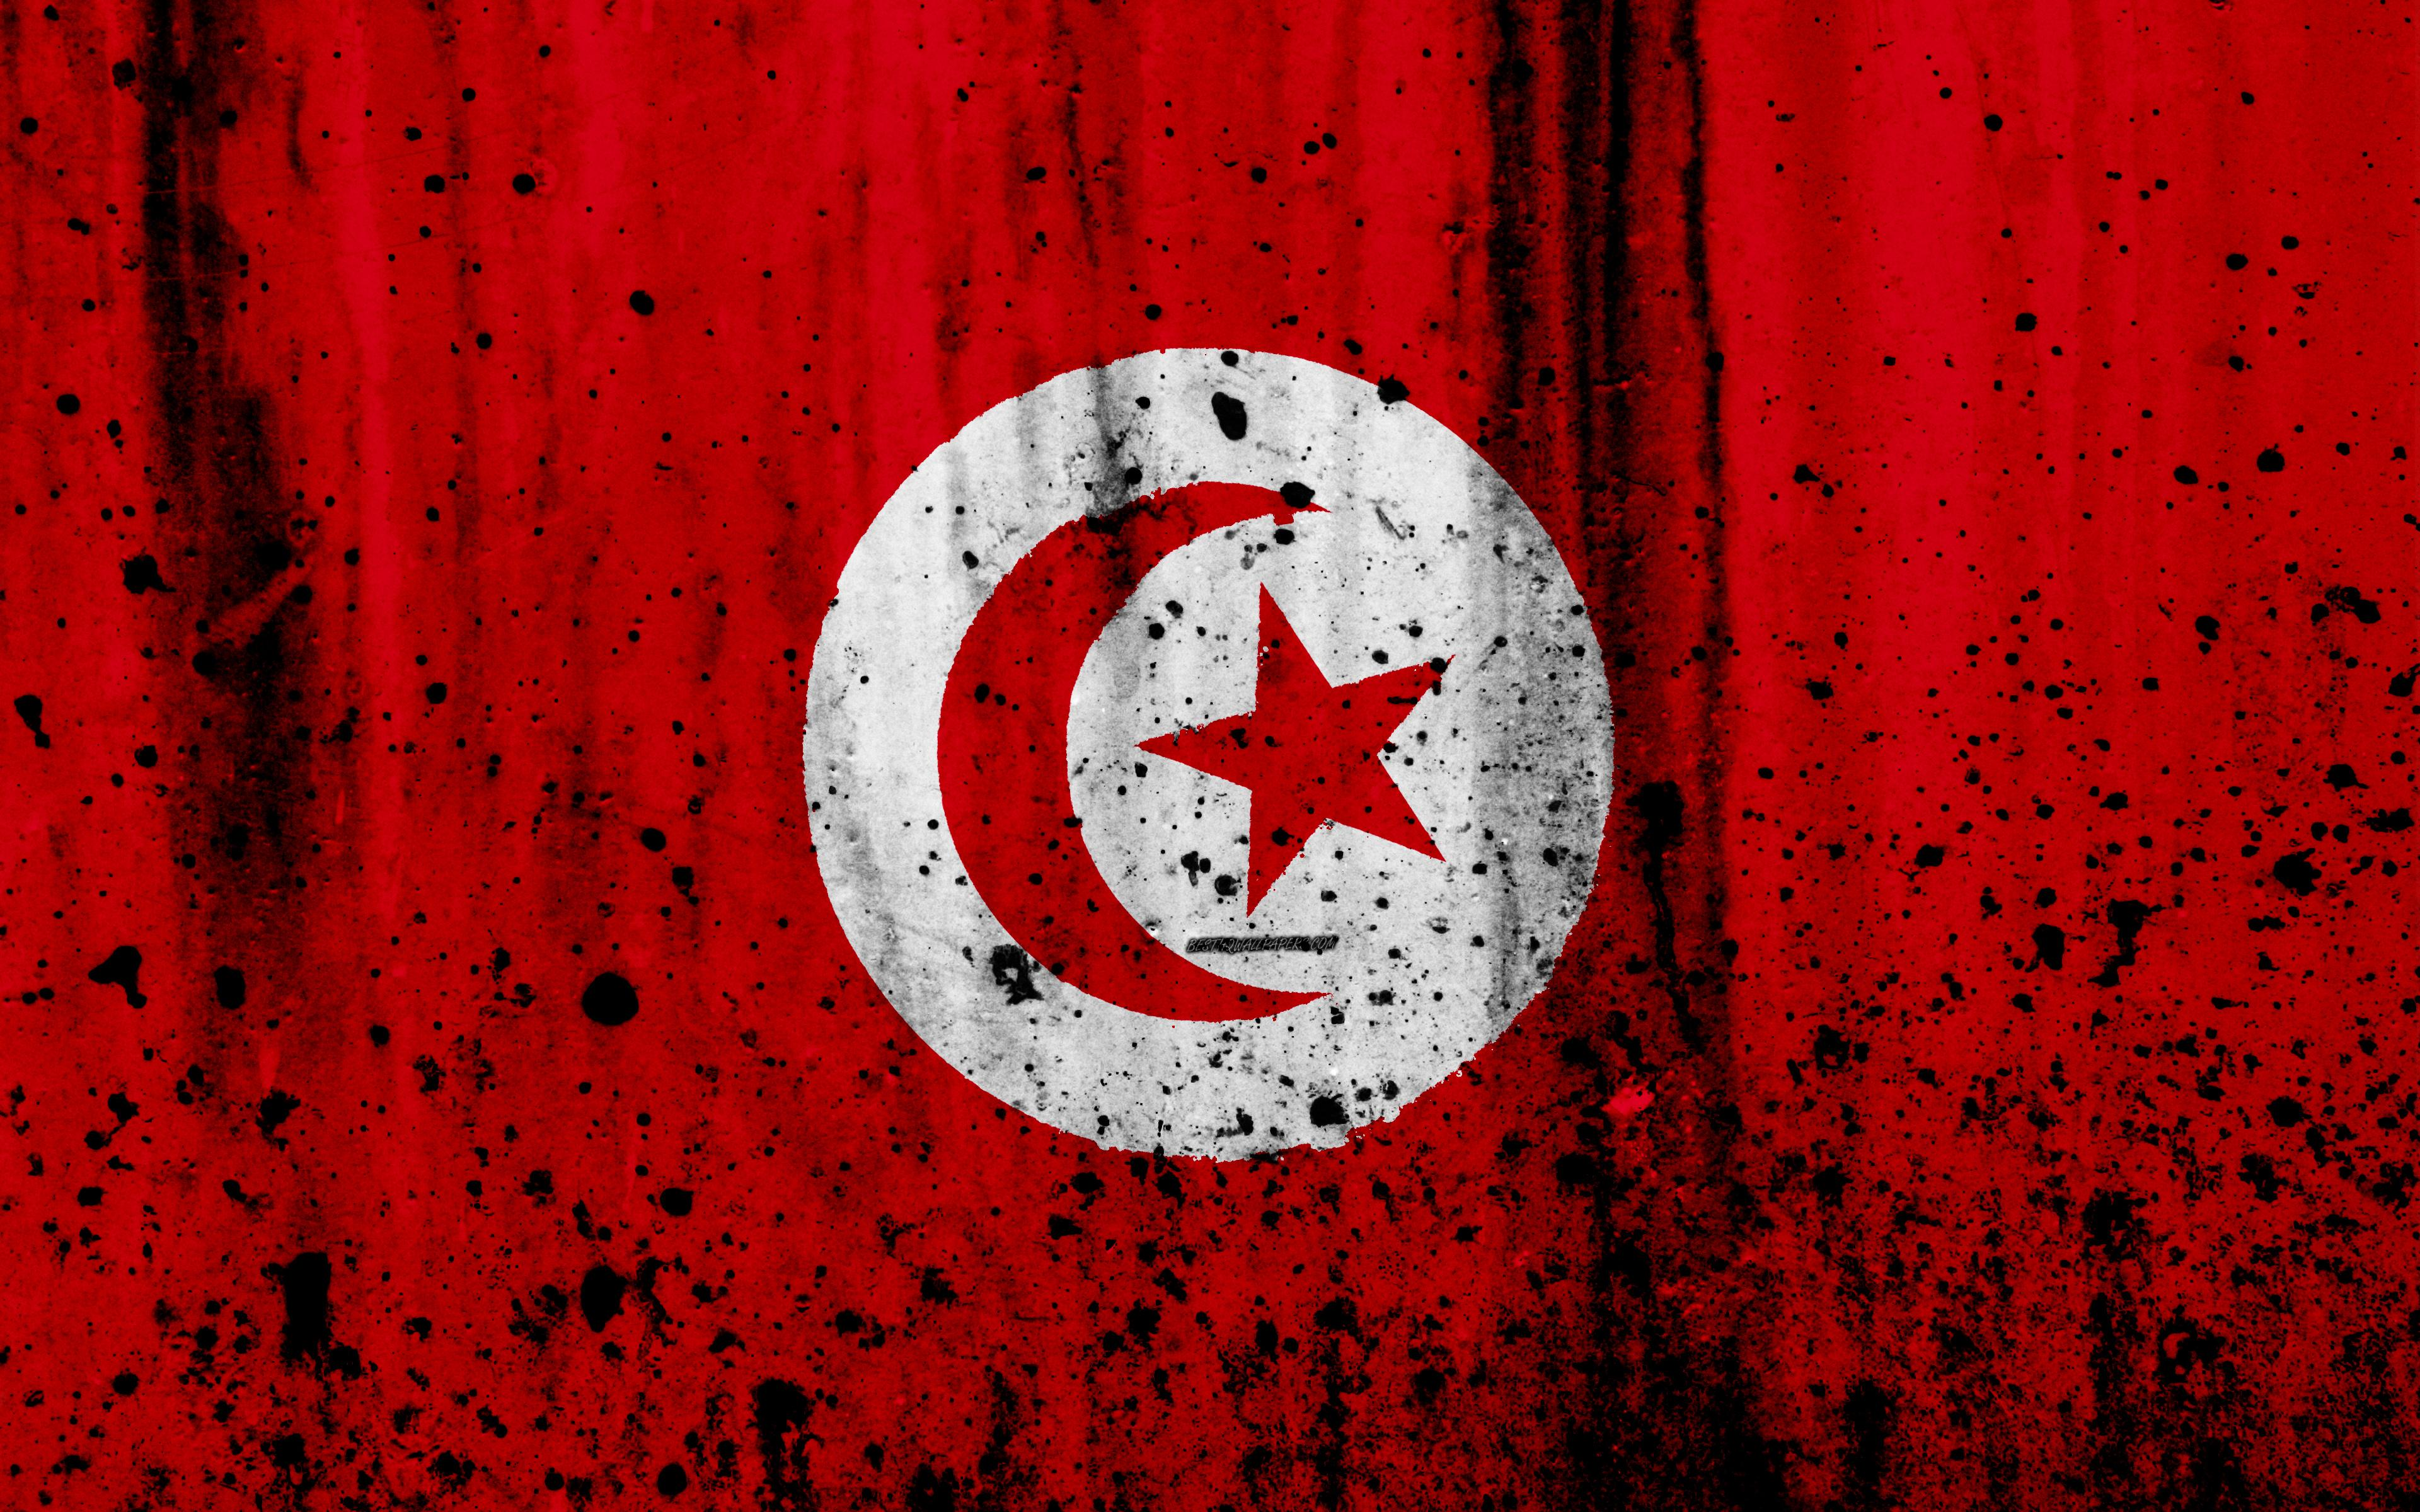 Download wallpapers Tunisian flag, 4k, grunge, flag of Tunisia